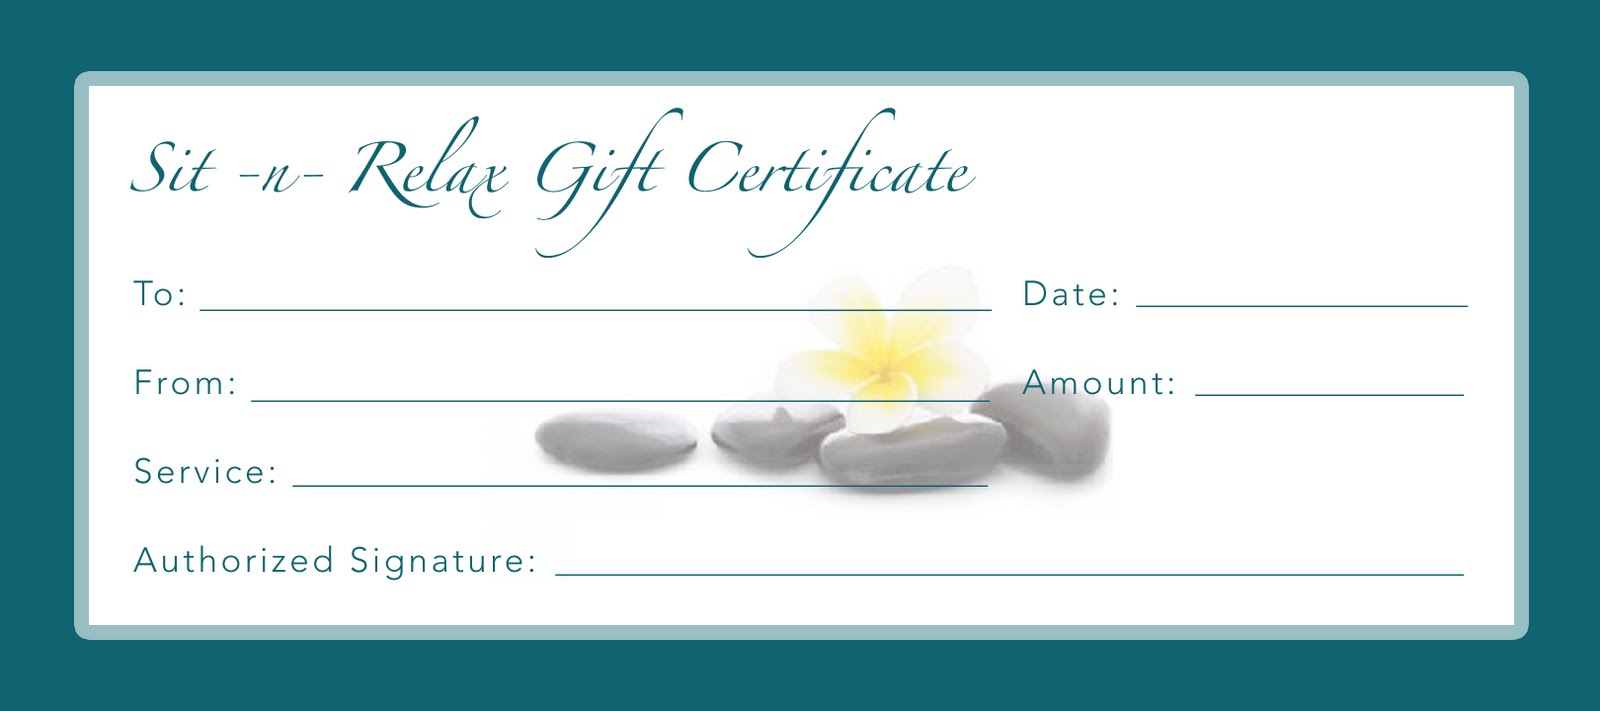 Stunning Gift Certificate Cards For Businesses Pictures Inspiration ...